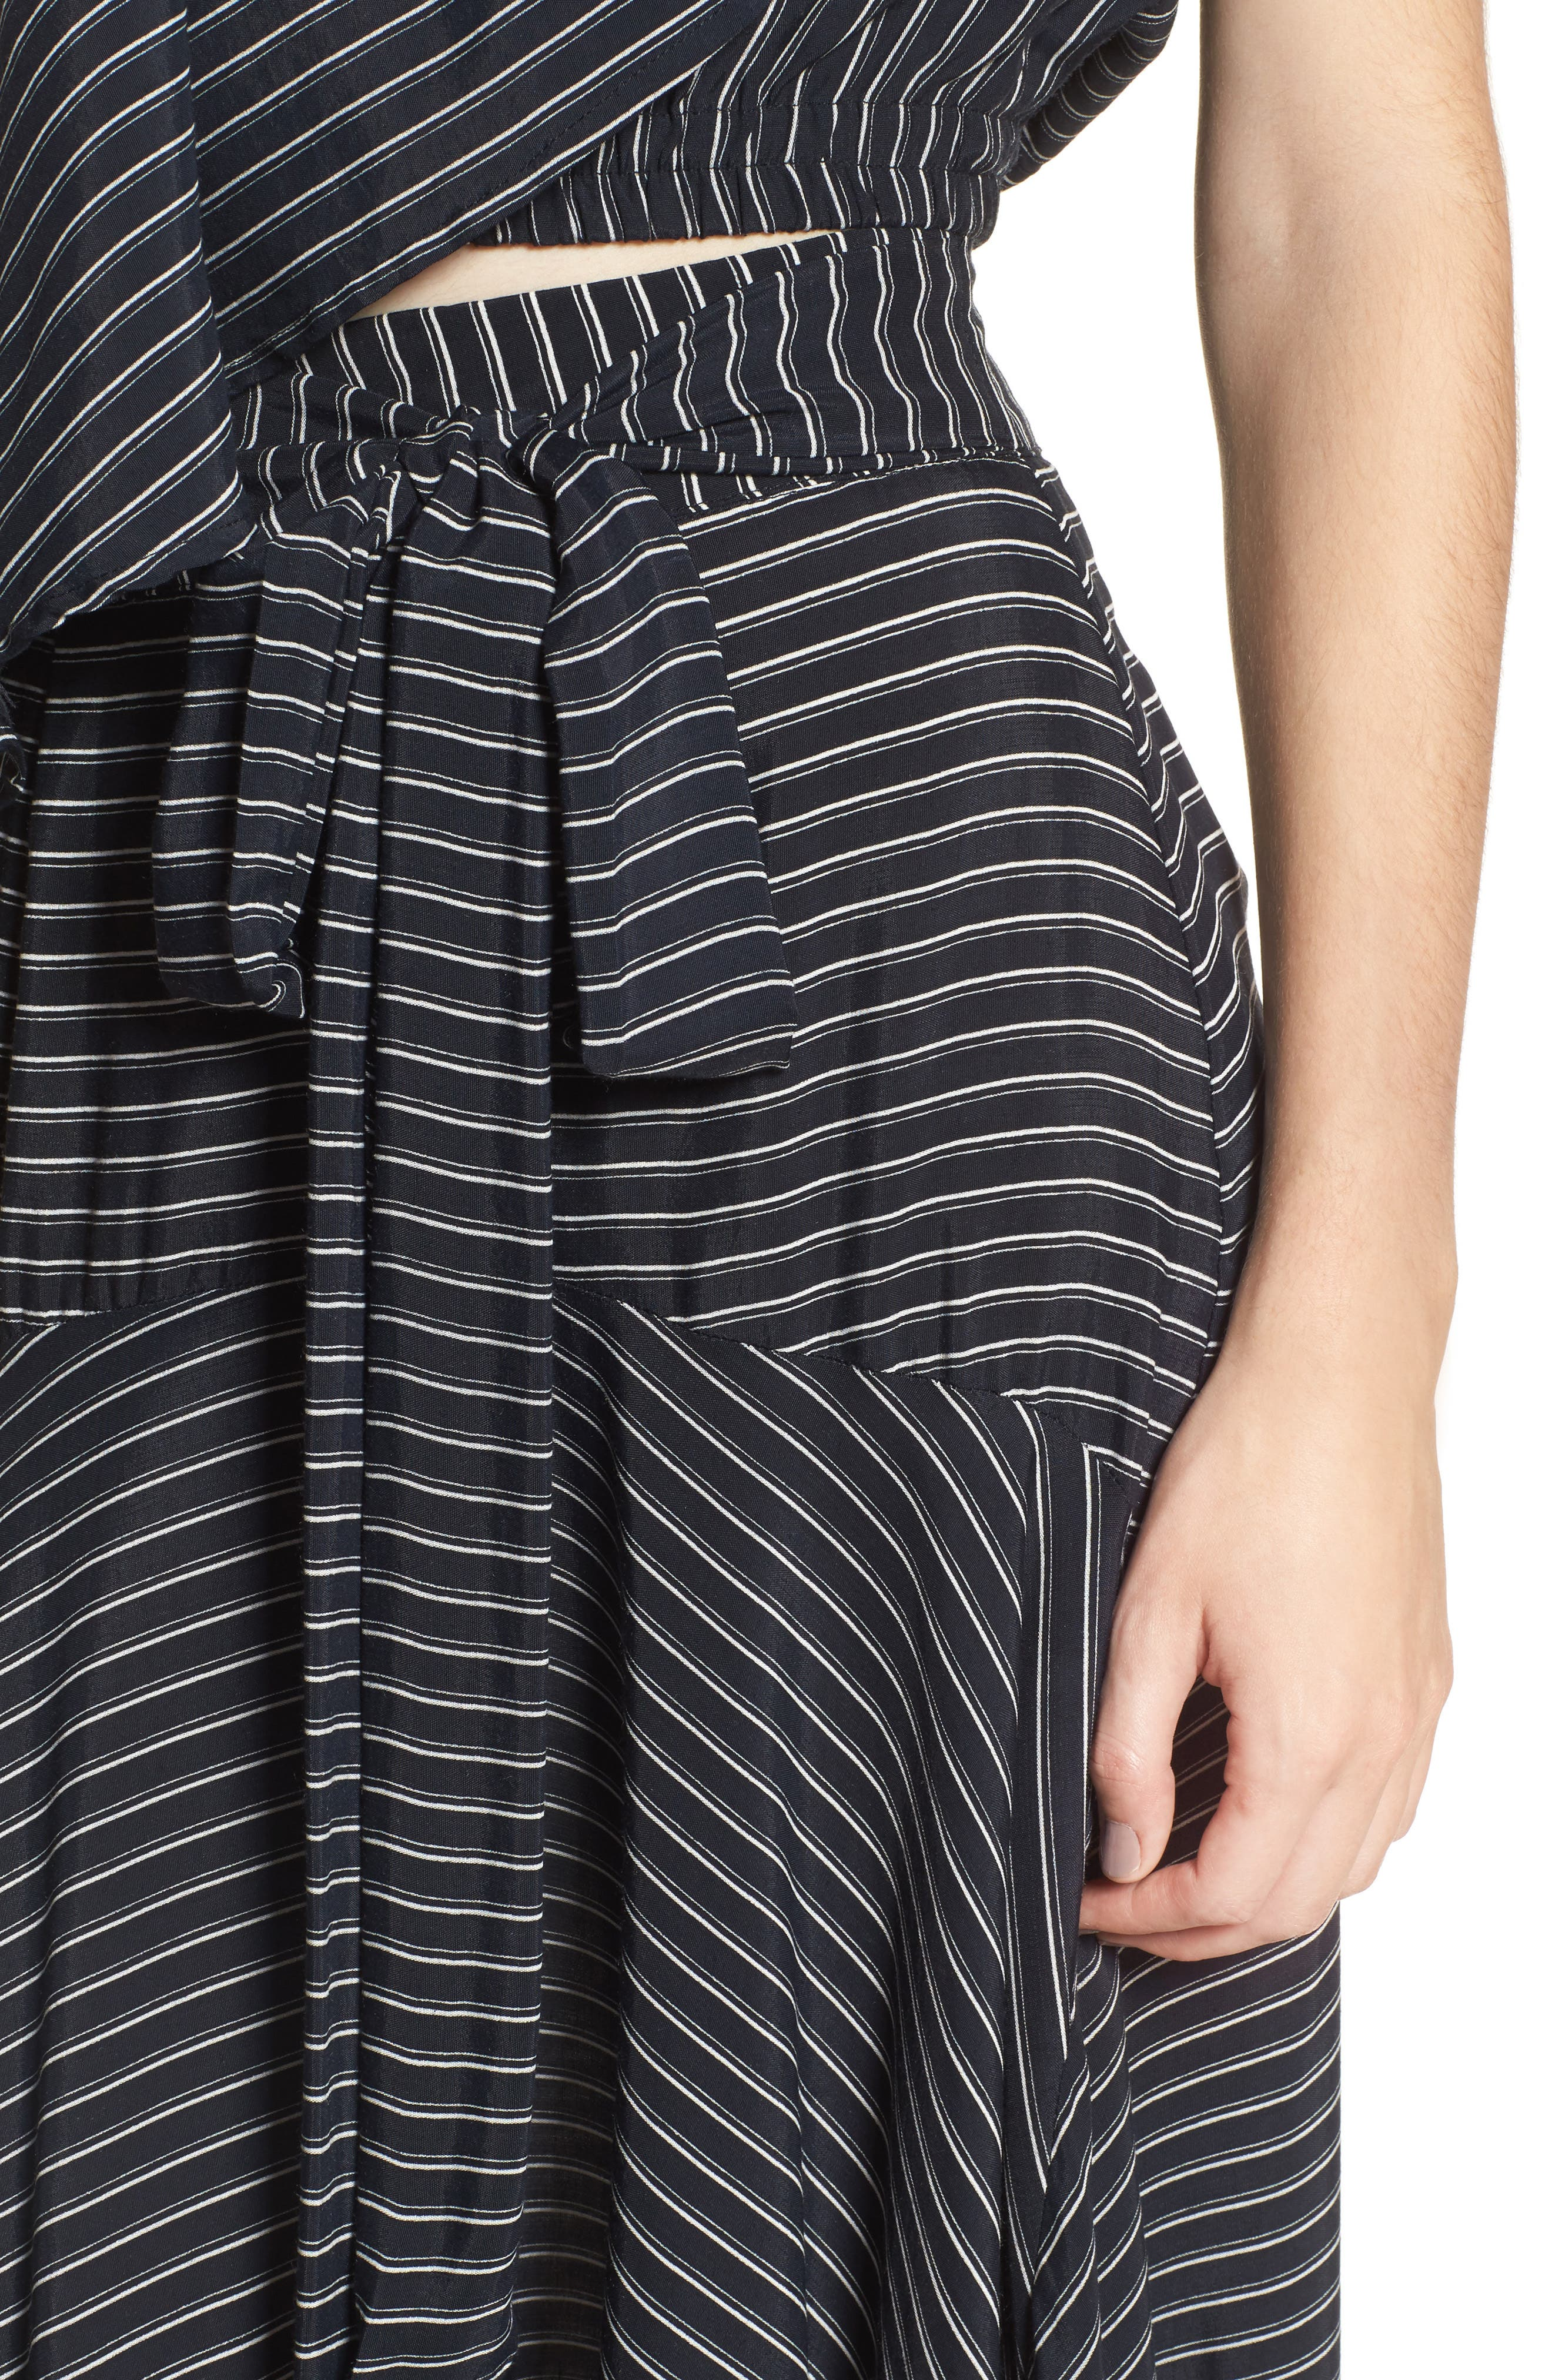 Kamares Ruffle Midi Skirt,                             Alternate thumbnail 4, color,                             San Cristobal Stripe Print